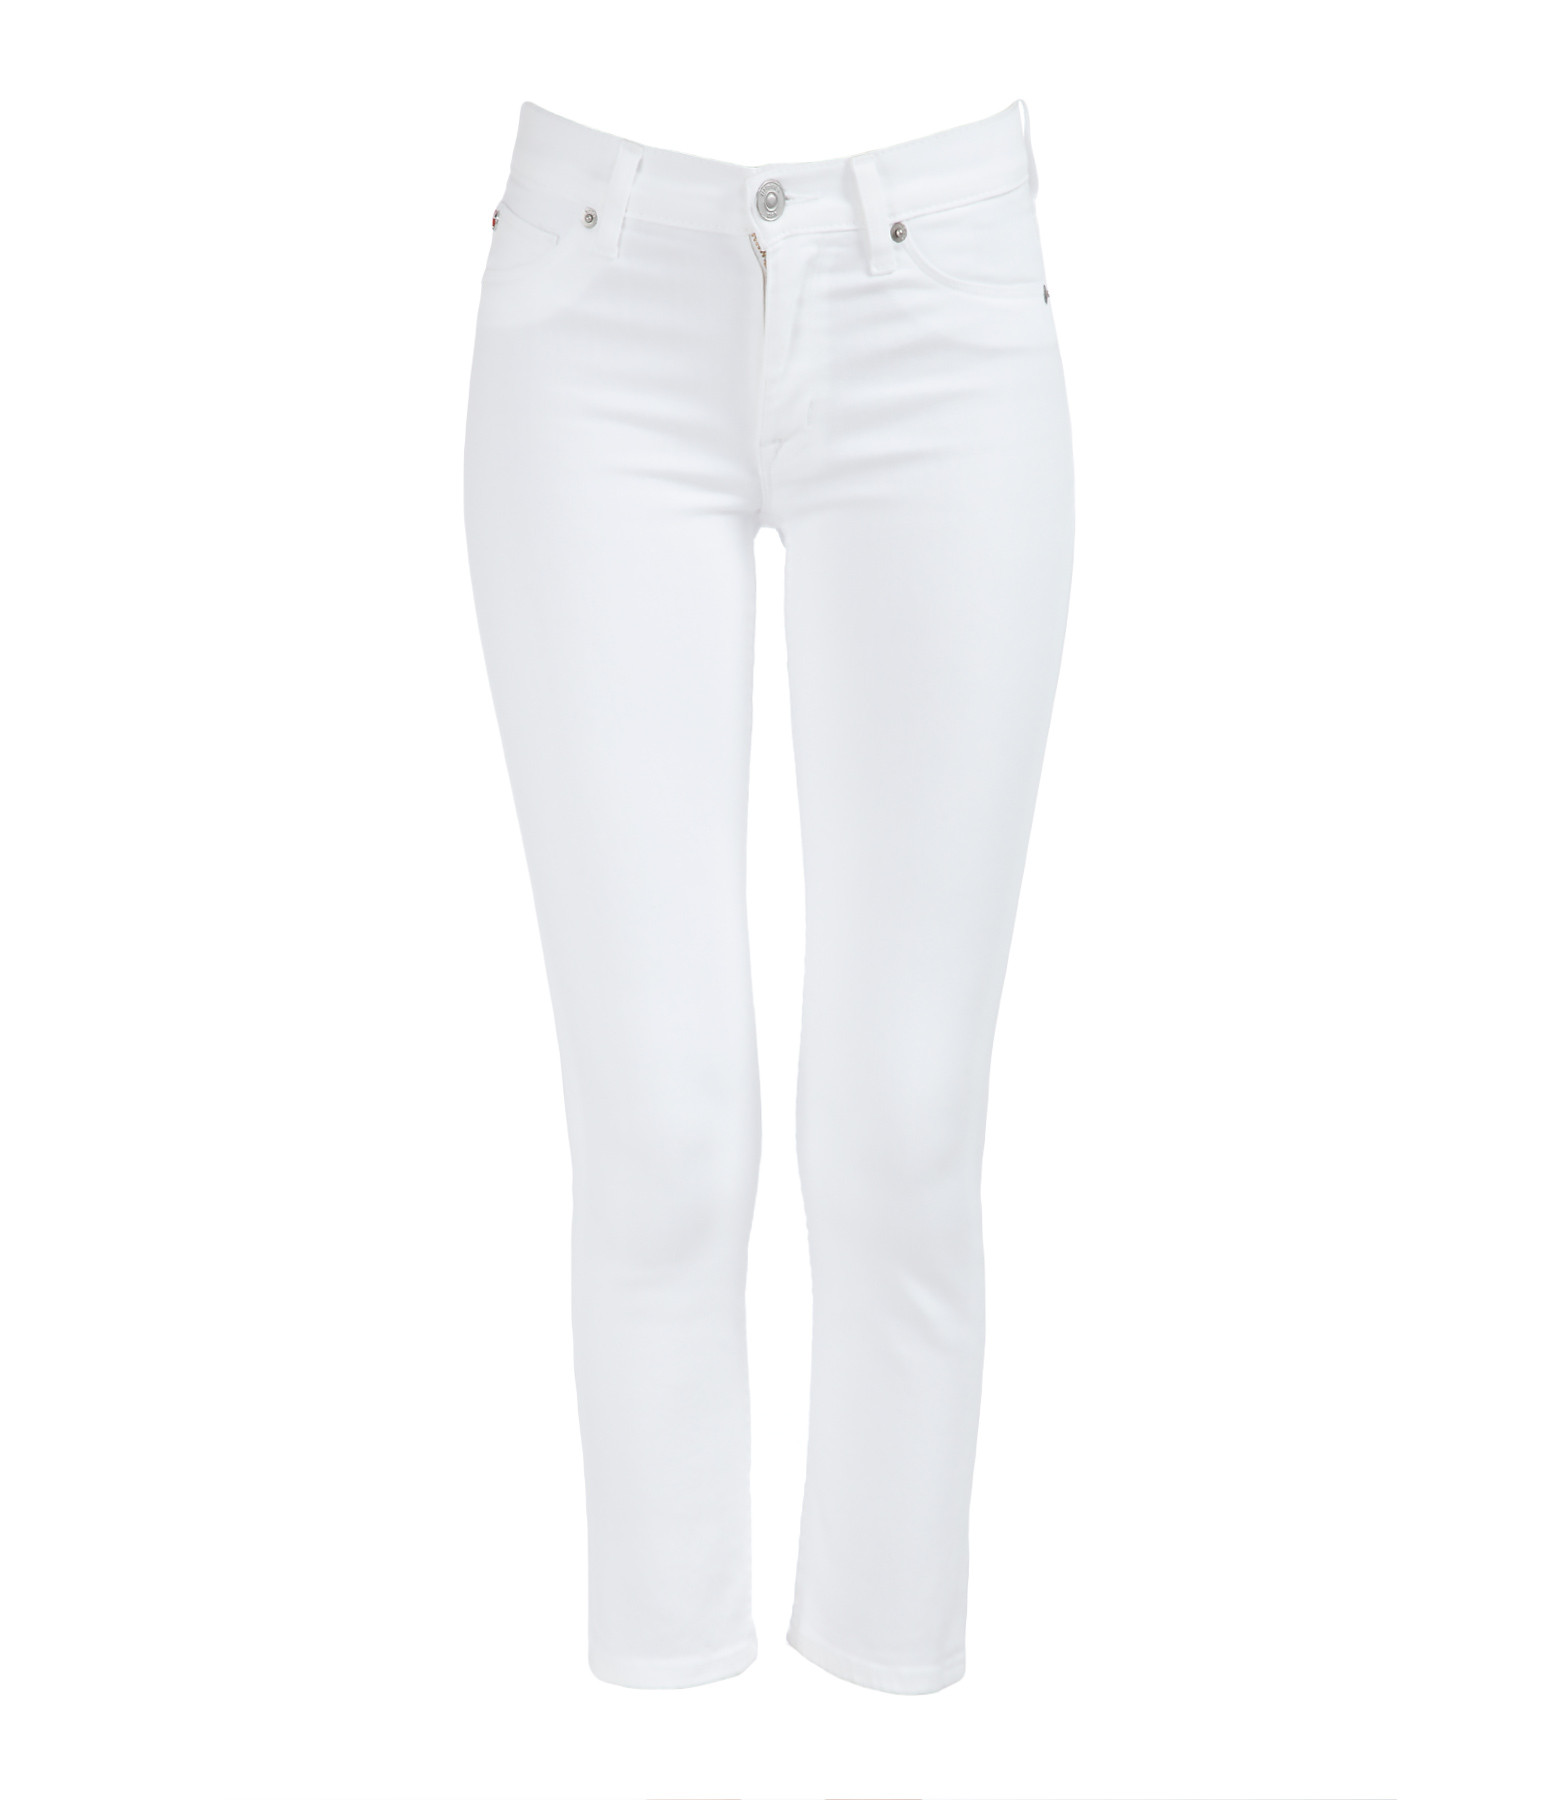 Jean Fallon Crop White - HUDSON